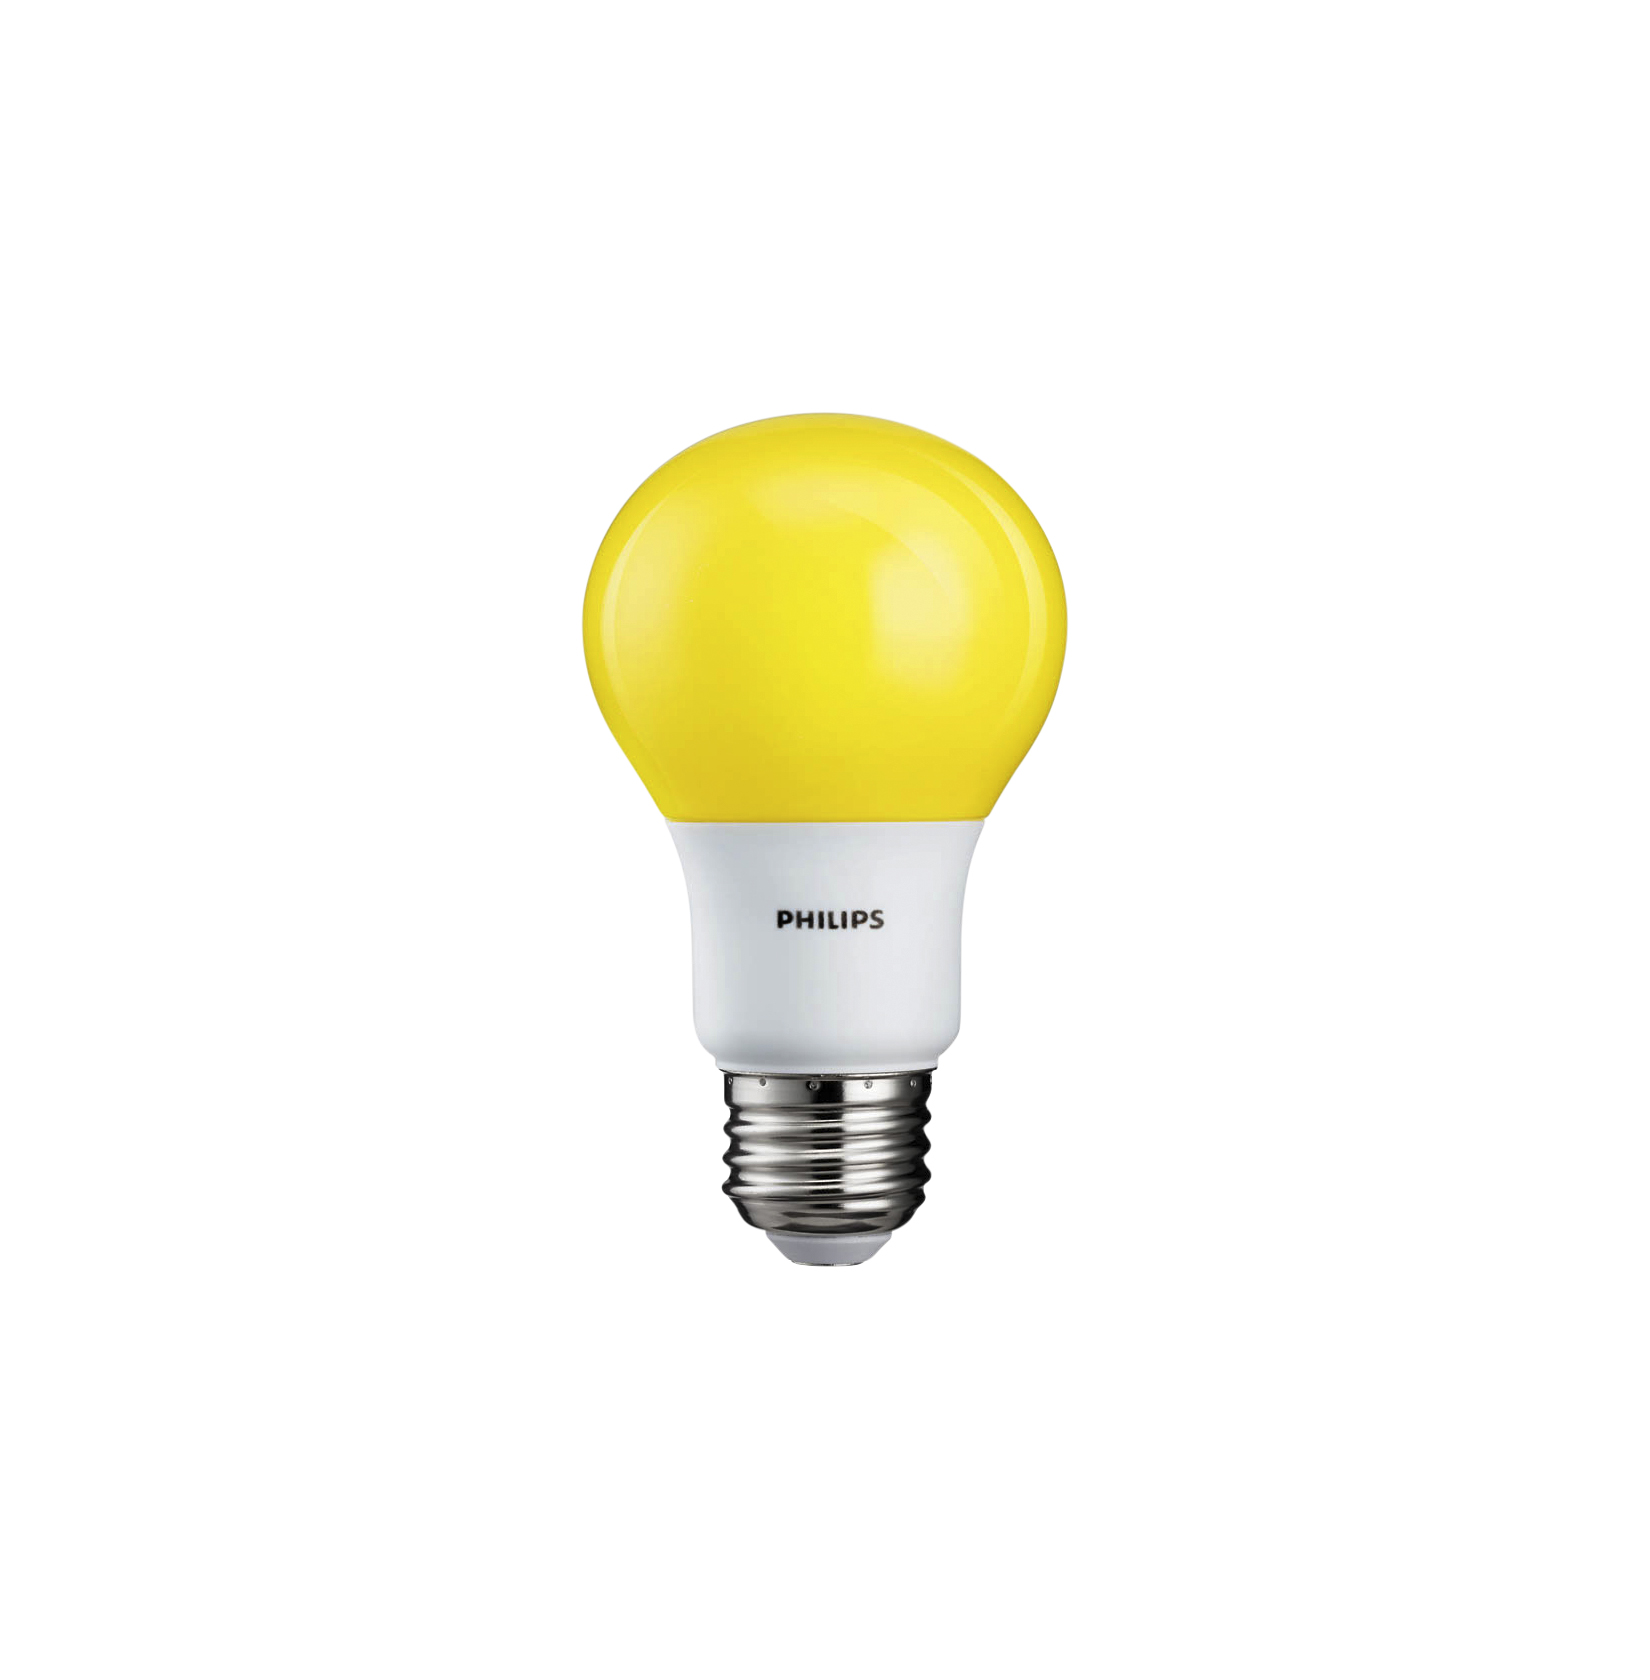 Philips 60W equivalent yellow LED bug-light bulb